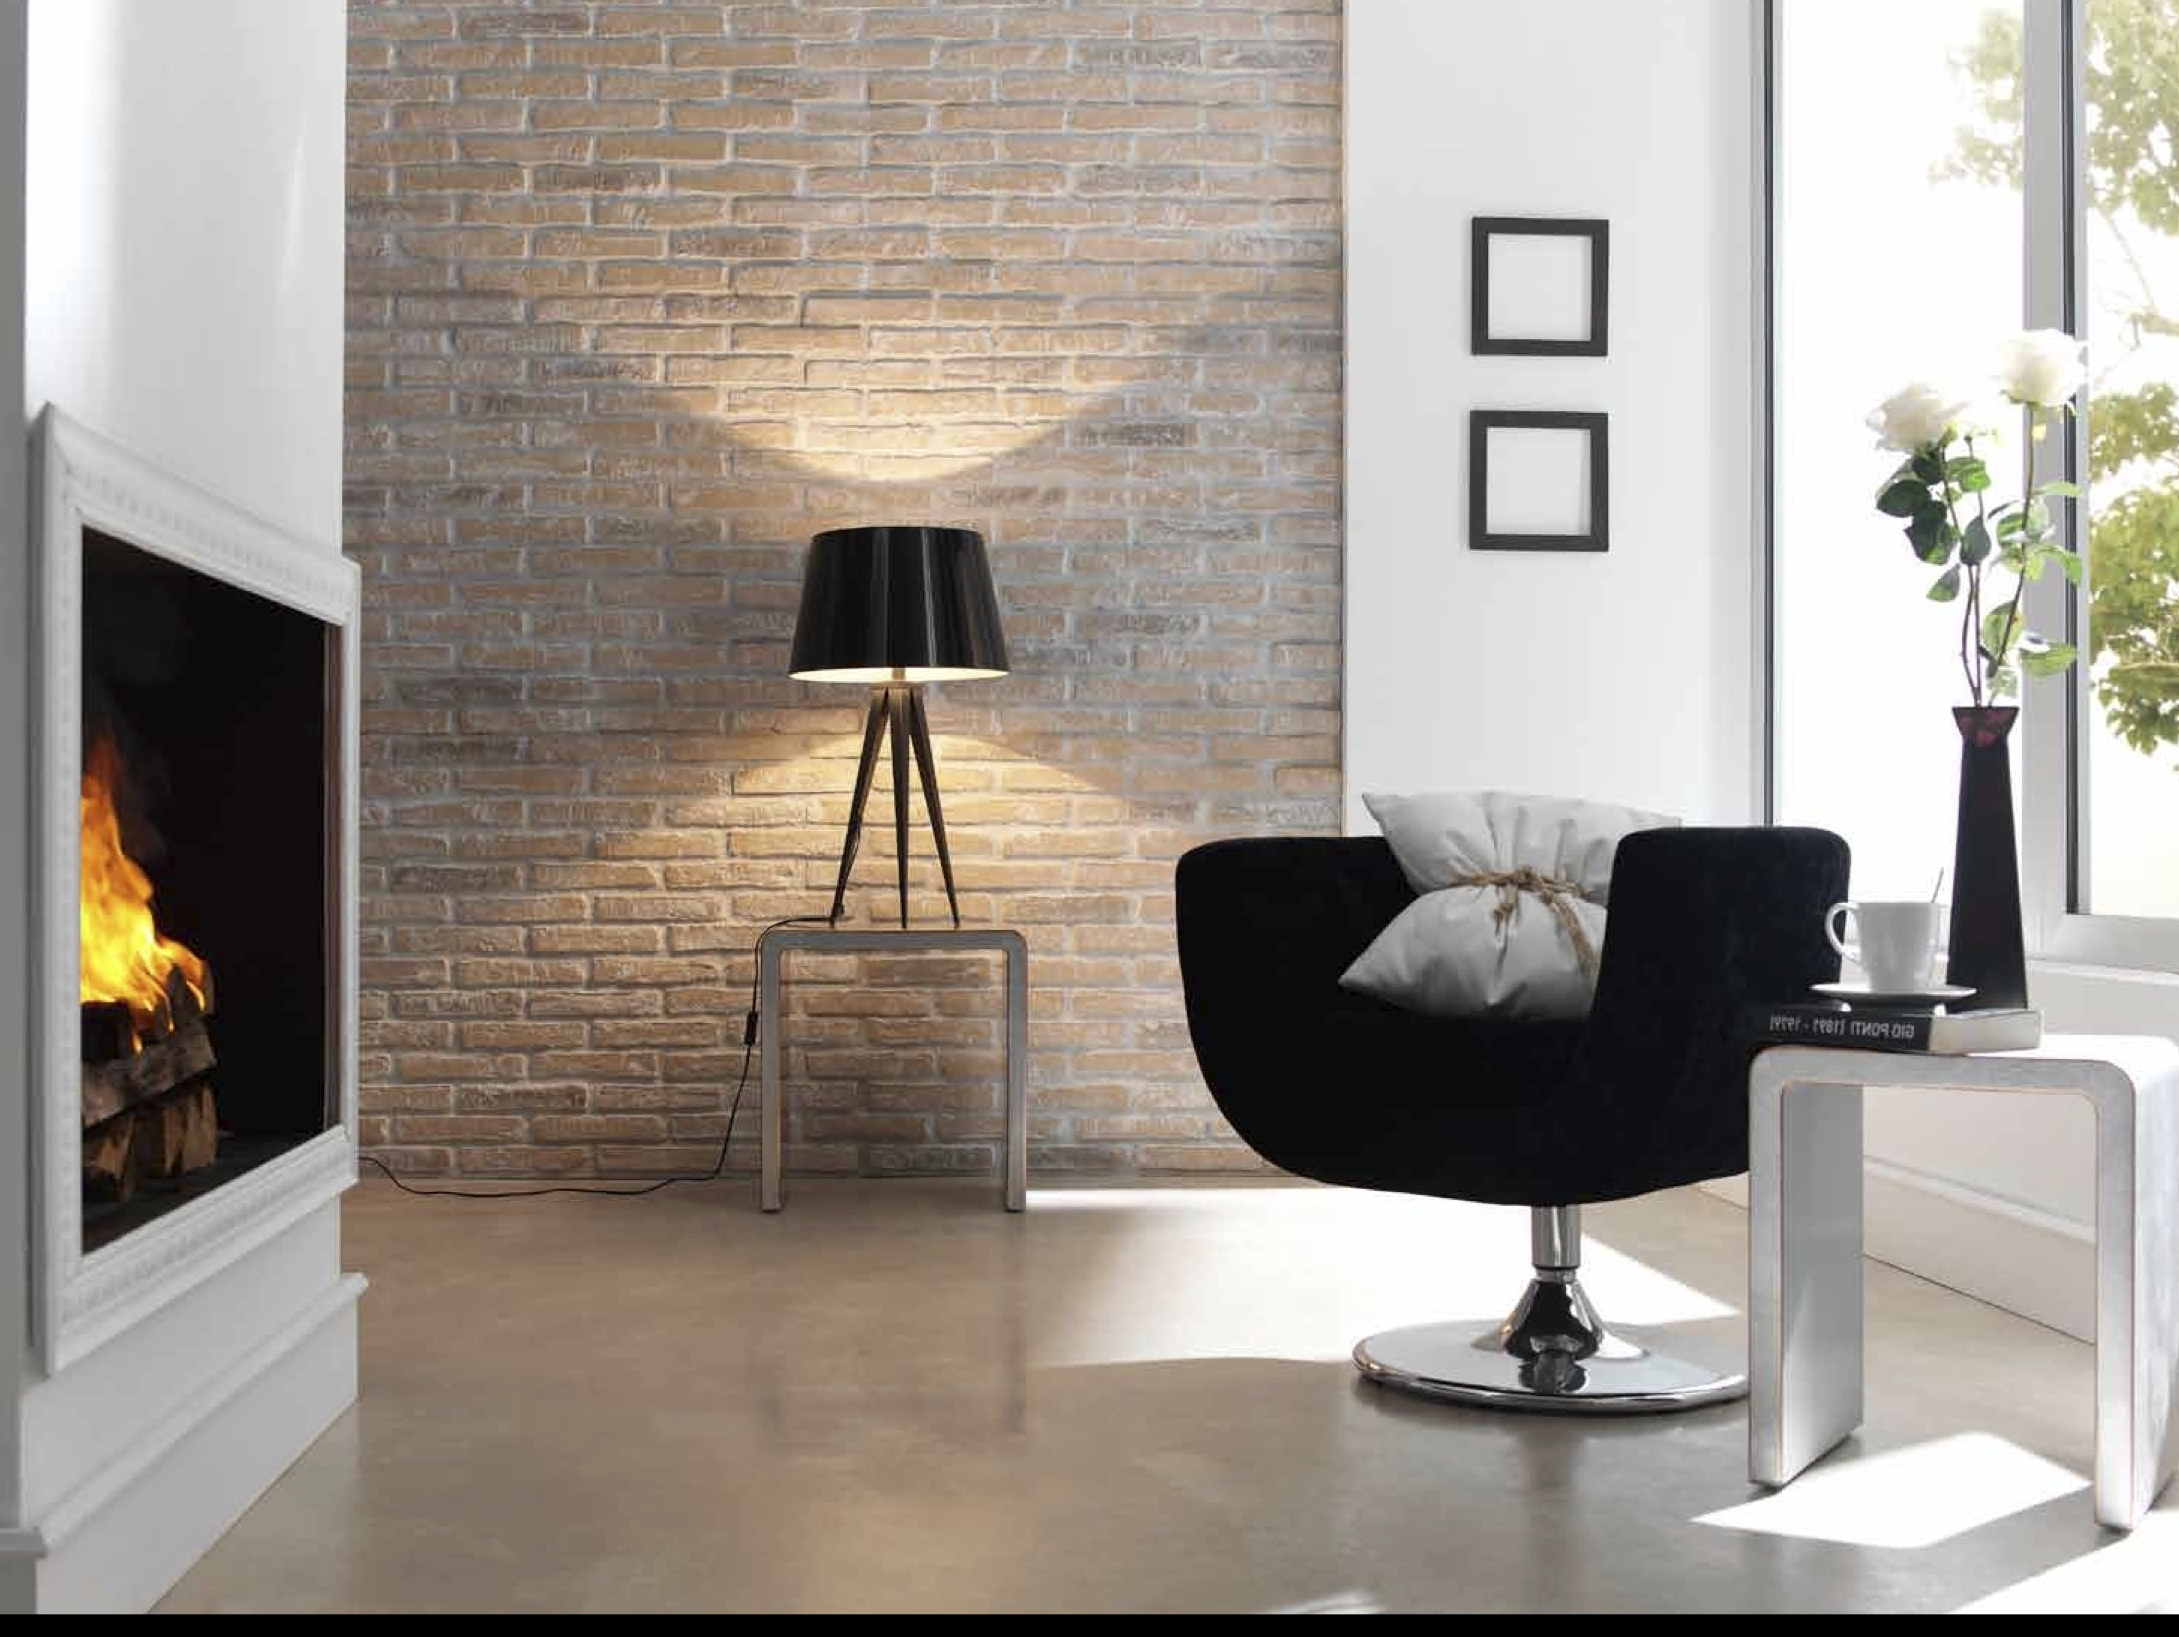 Its all about the exposed brick effect dreamwall for Simulador de cocina